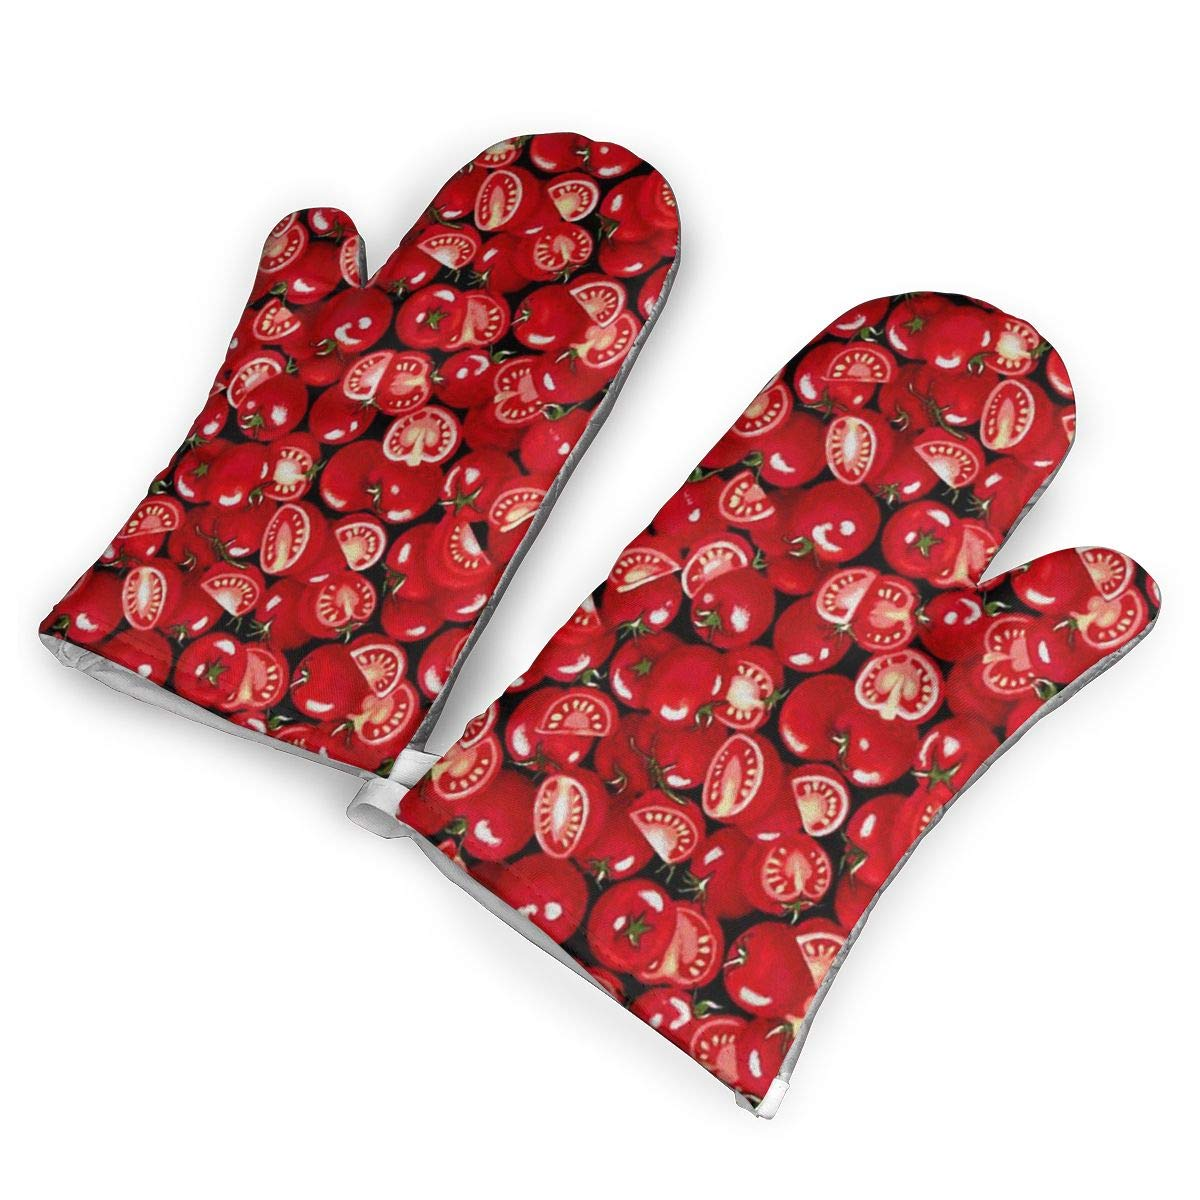 SUNNMOON Cherry Tomato Oven Mitts Heat Resistant Oven Gloves of Non-Slip,Kitchen for Cooking Baking Grilling